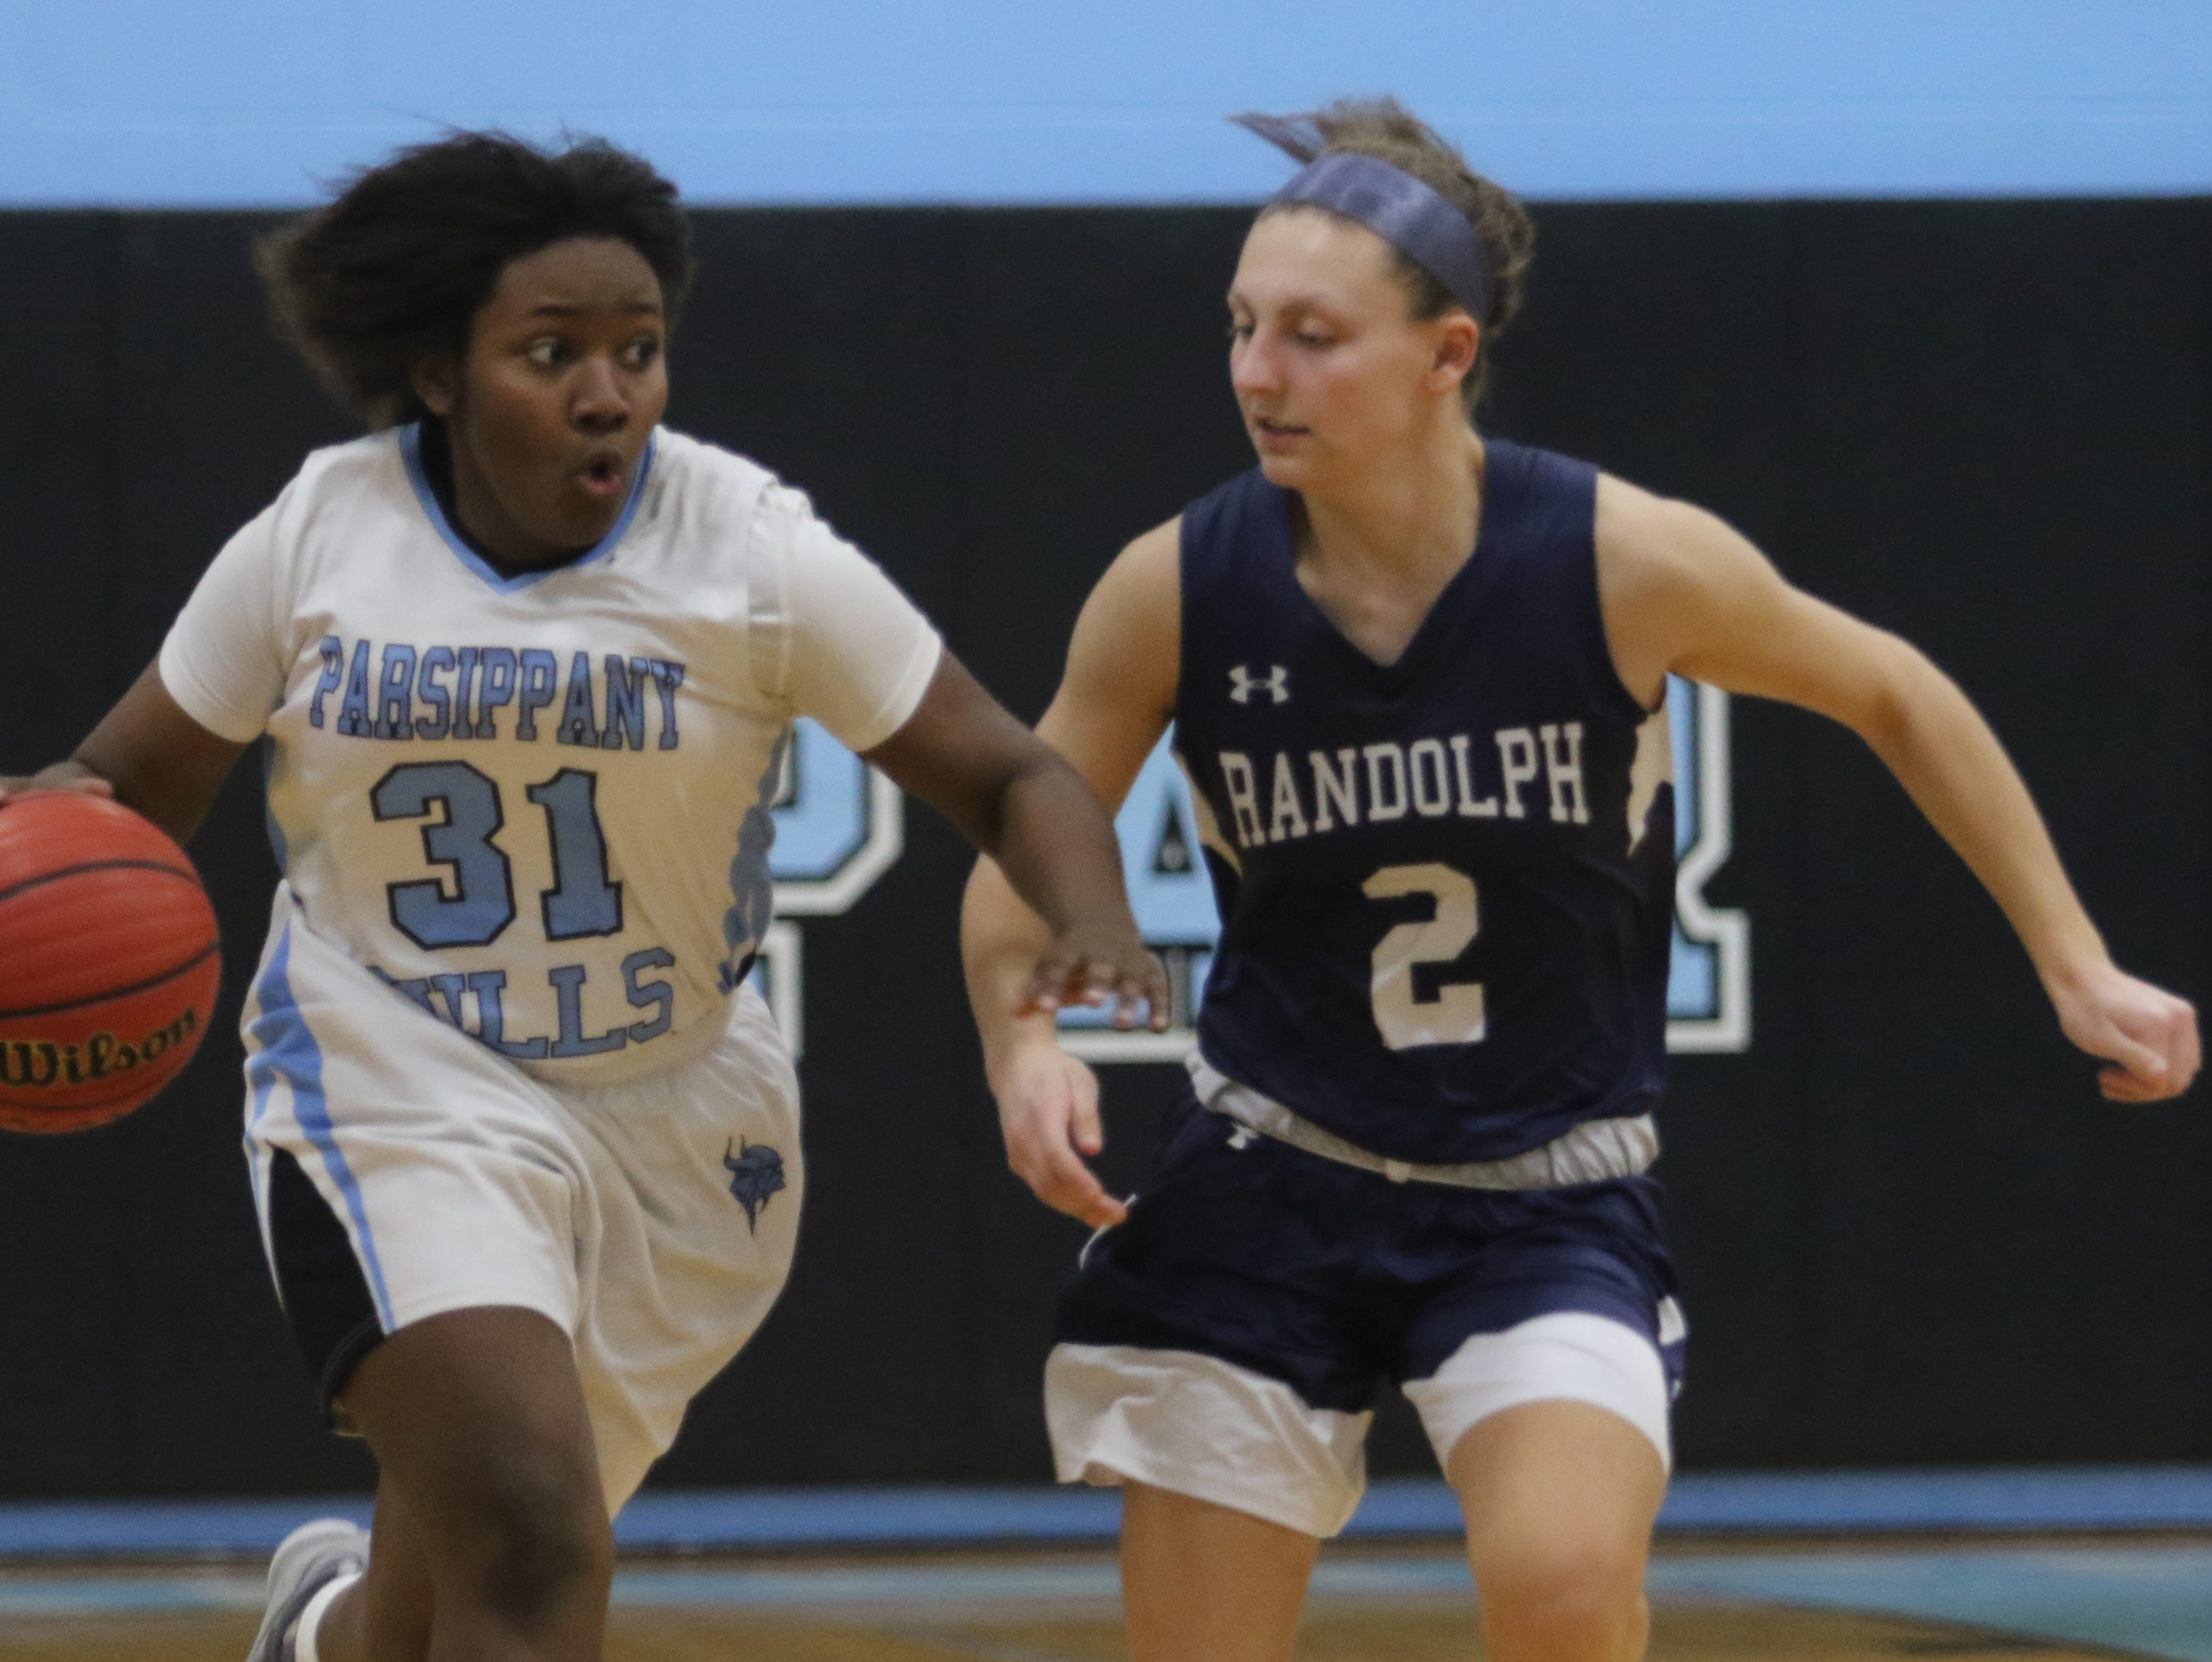 Nadriah Freeman of Parsippany Hills dribbles the ball down court while being guarded by Alyssa Alfieri of Randolph in the first half.